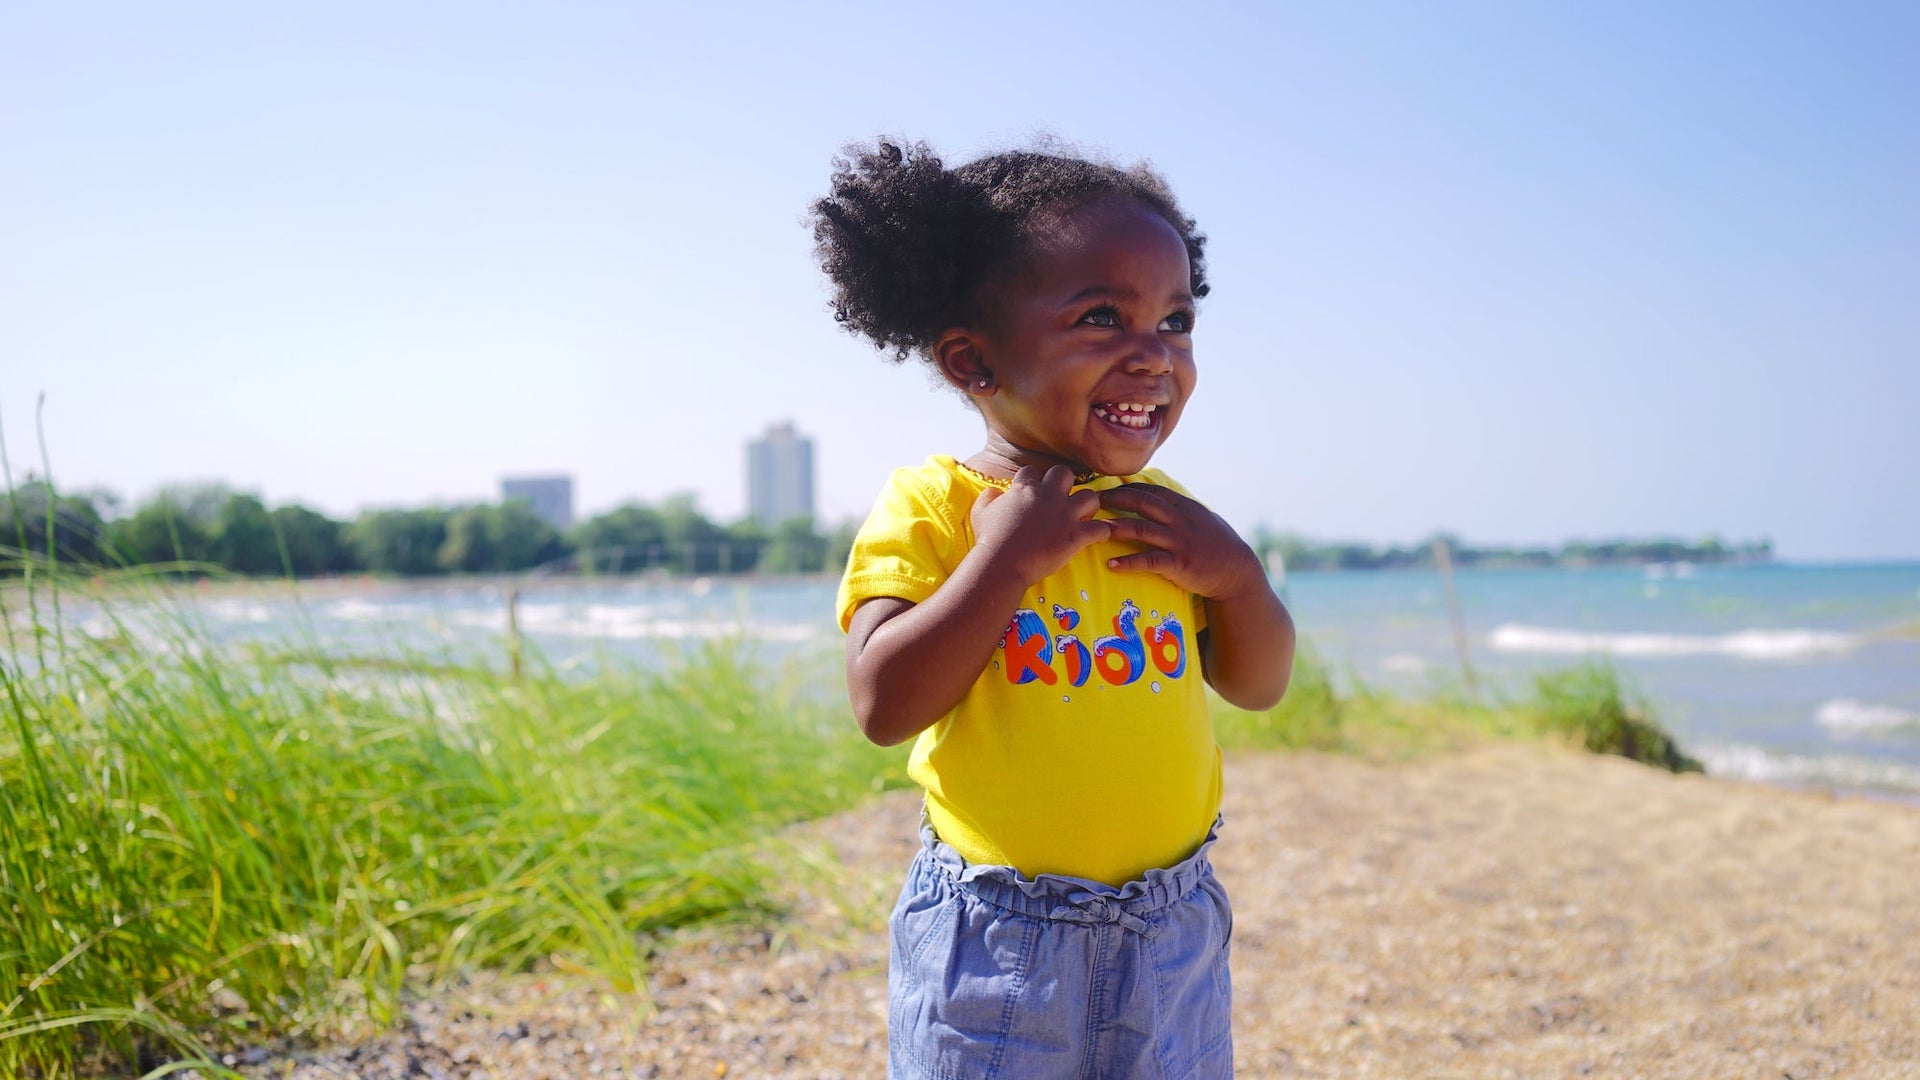 Shop These Baby & Kids Clothes & Toys to Support Black-Owned Businesses